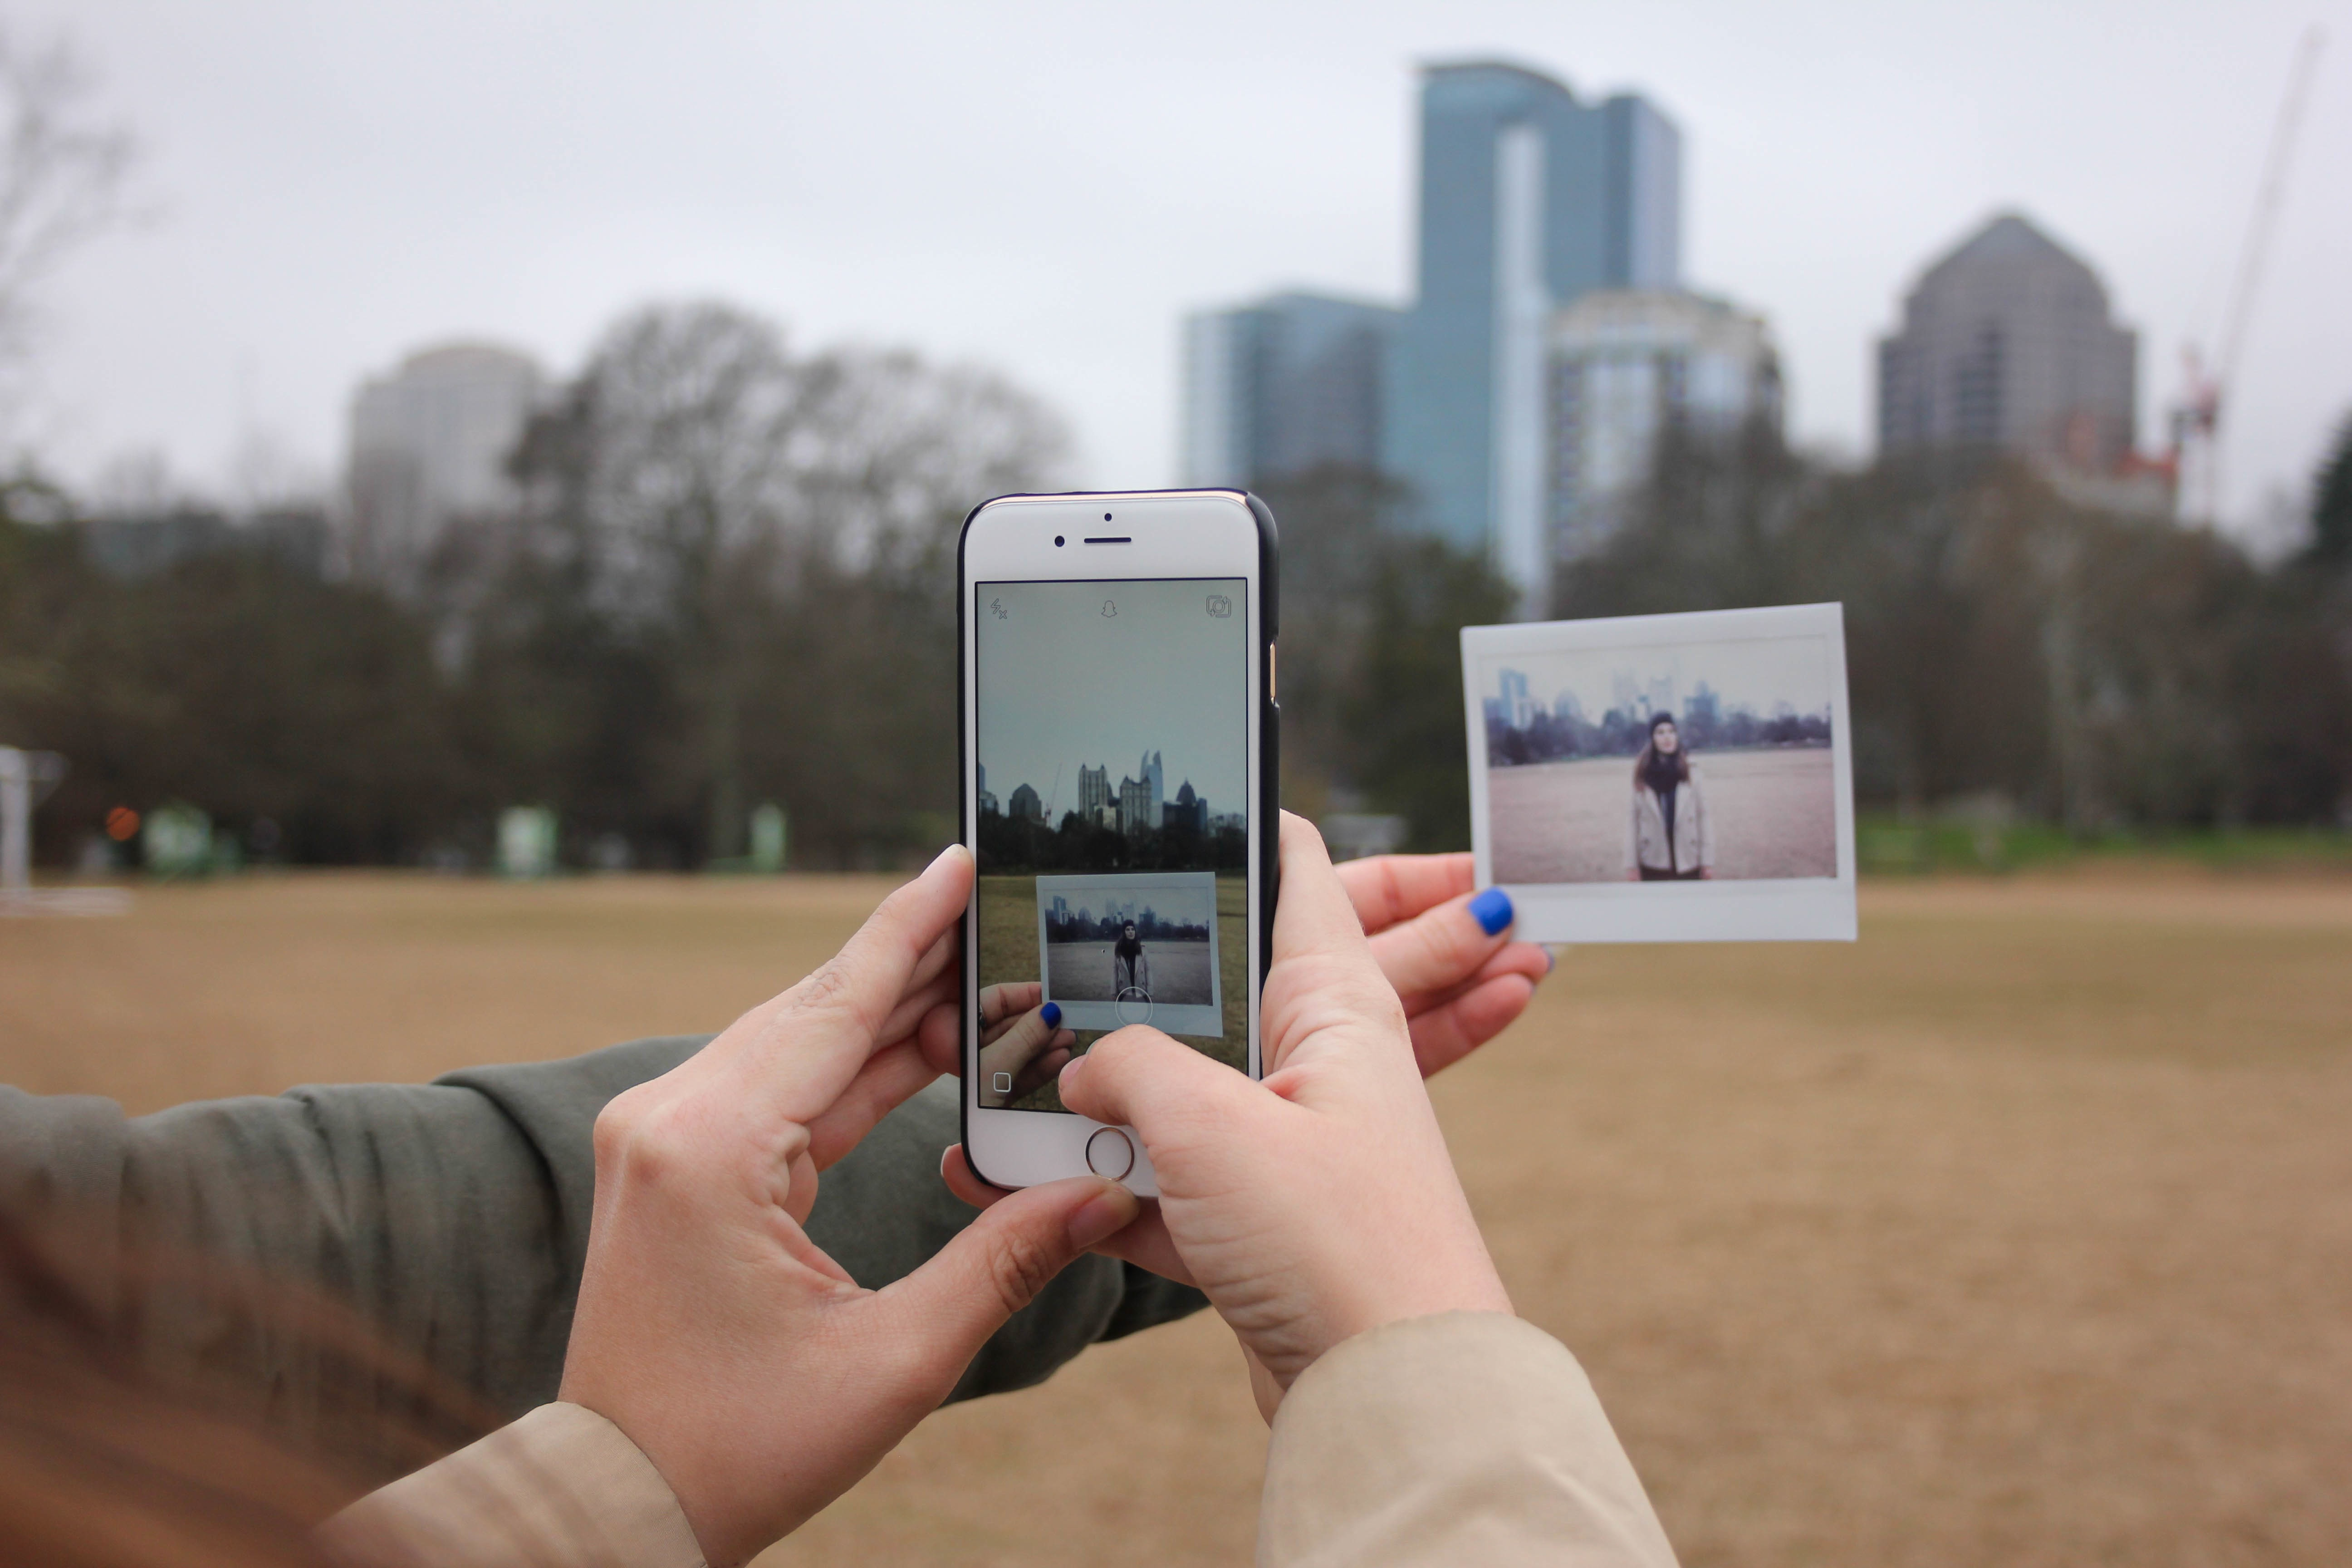 Two people taking a photo to post on social media.